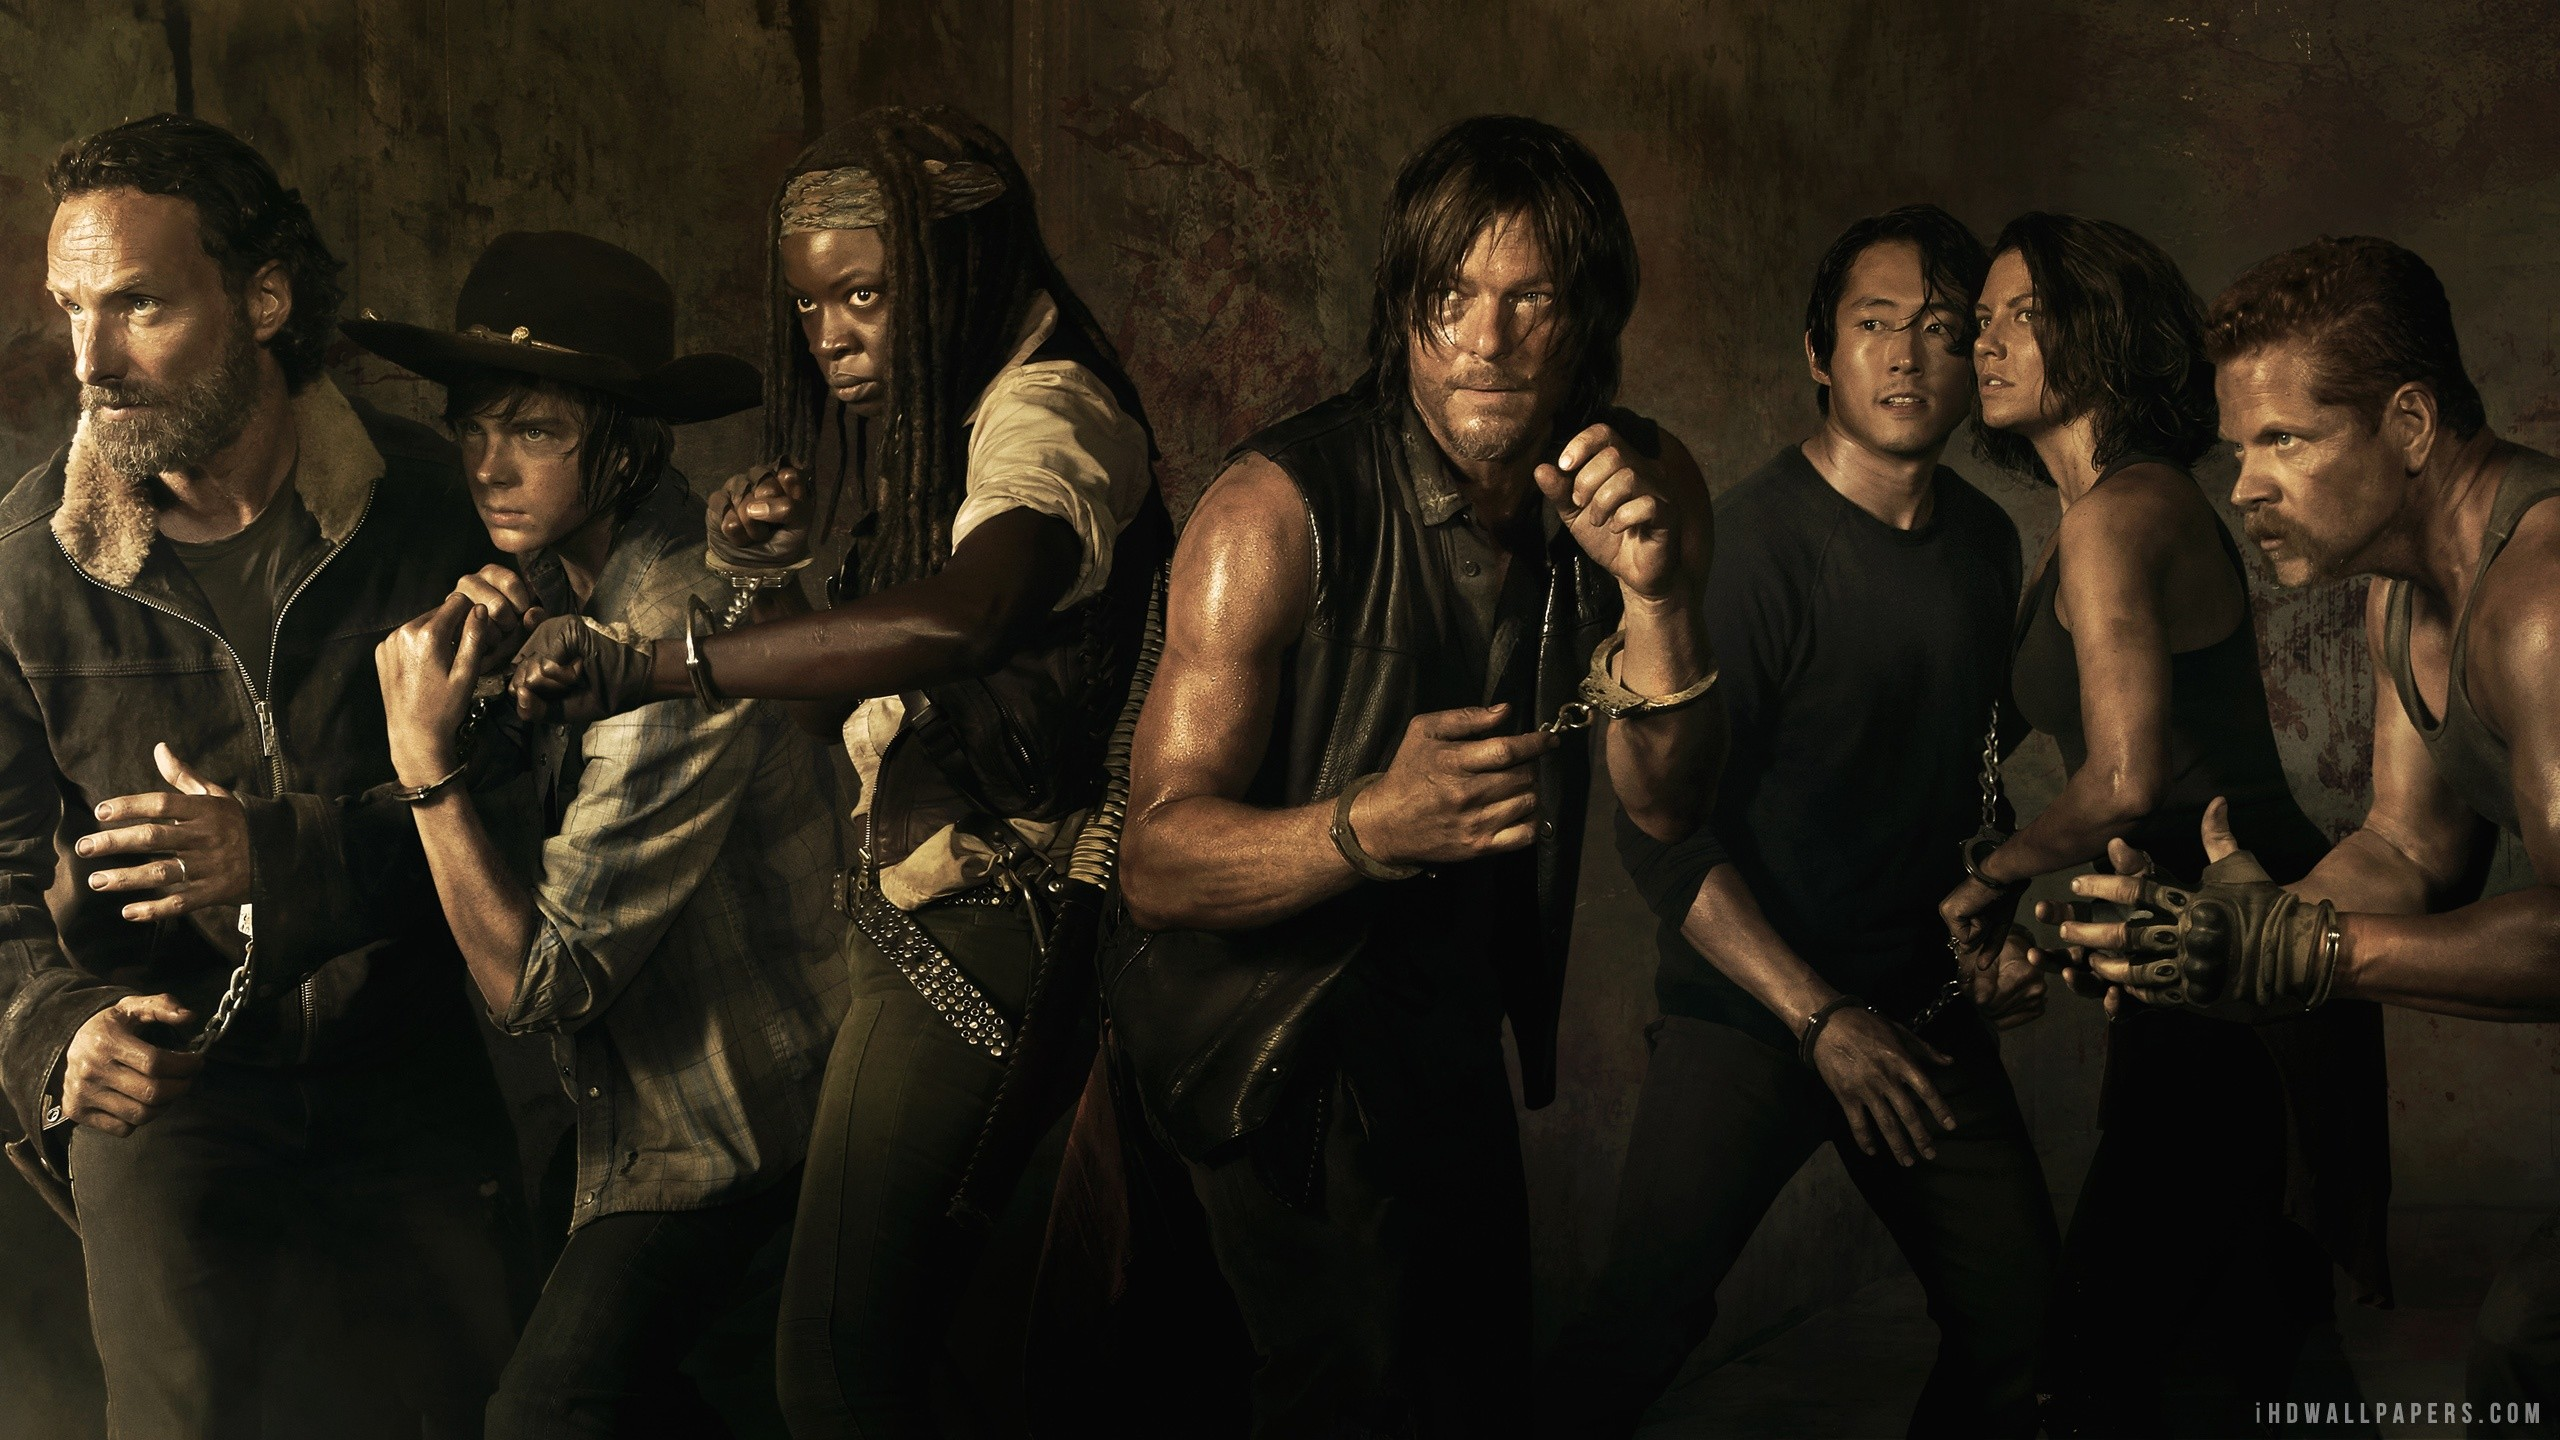 The Walking Dead Season 5 Wallpaper Wallpapertag